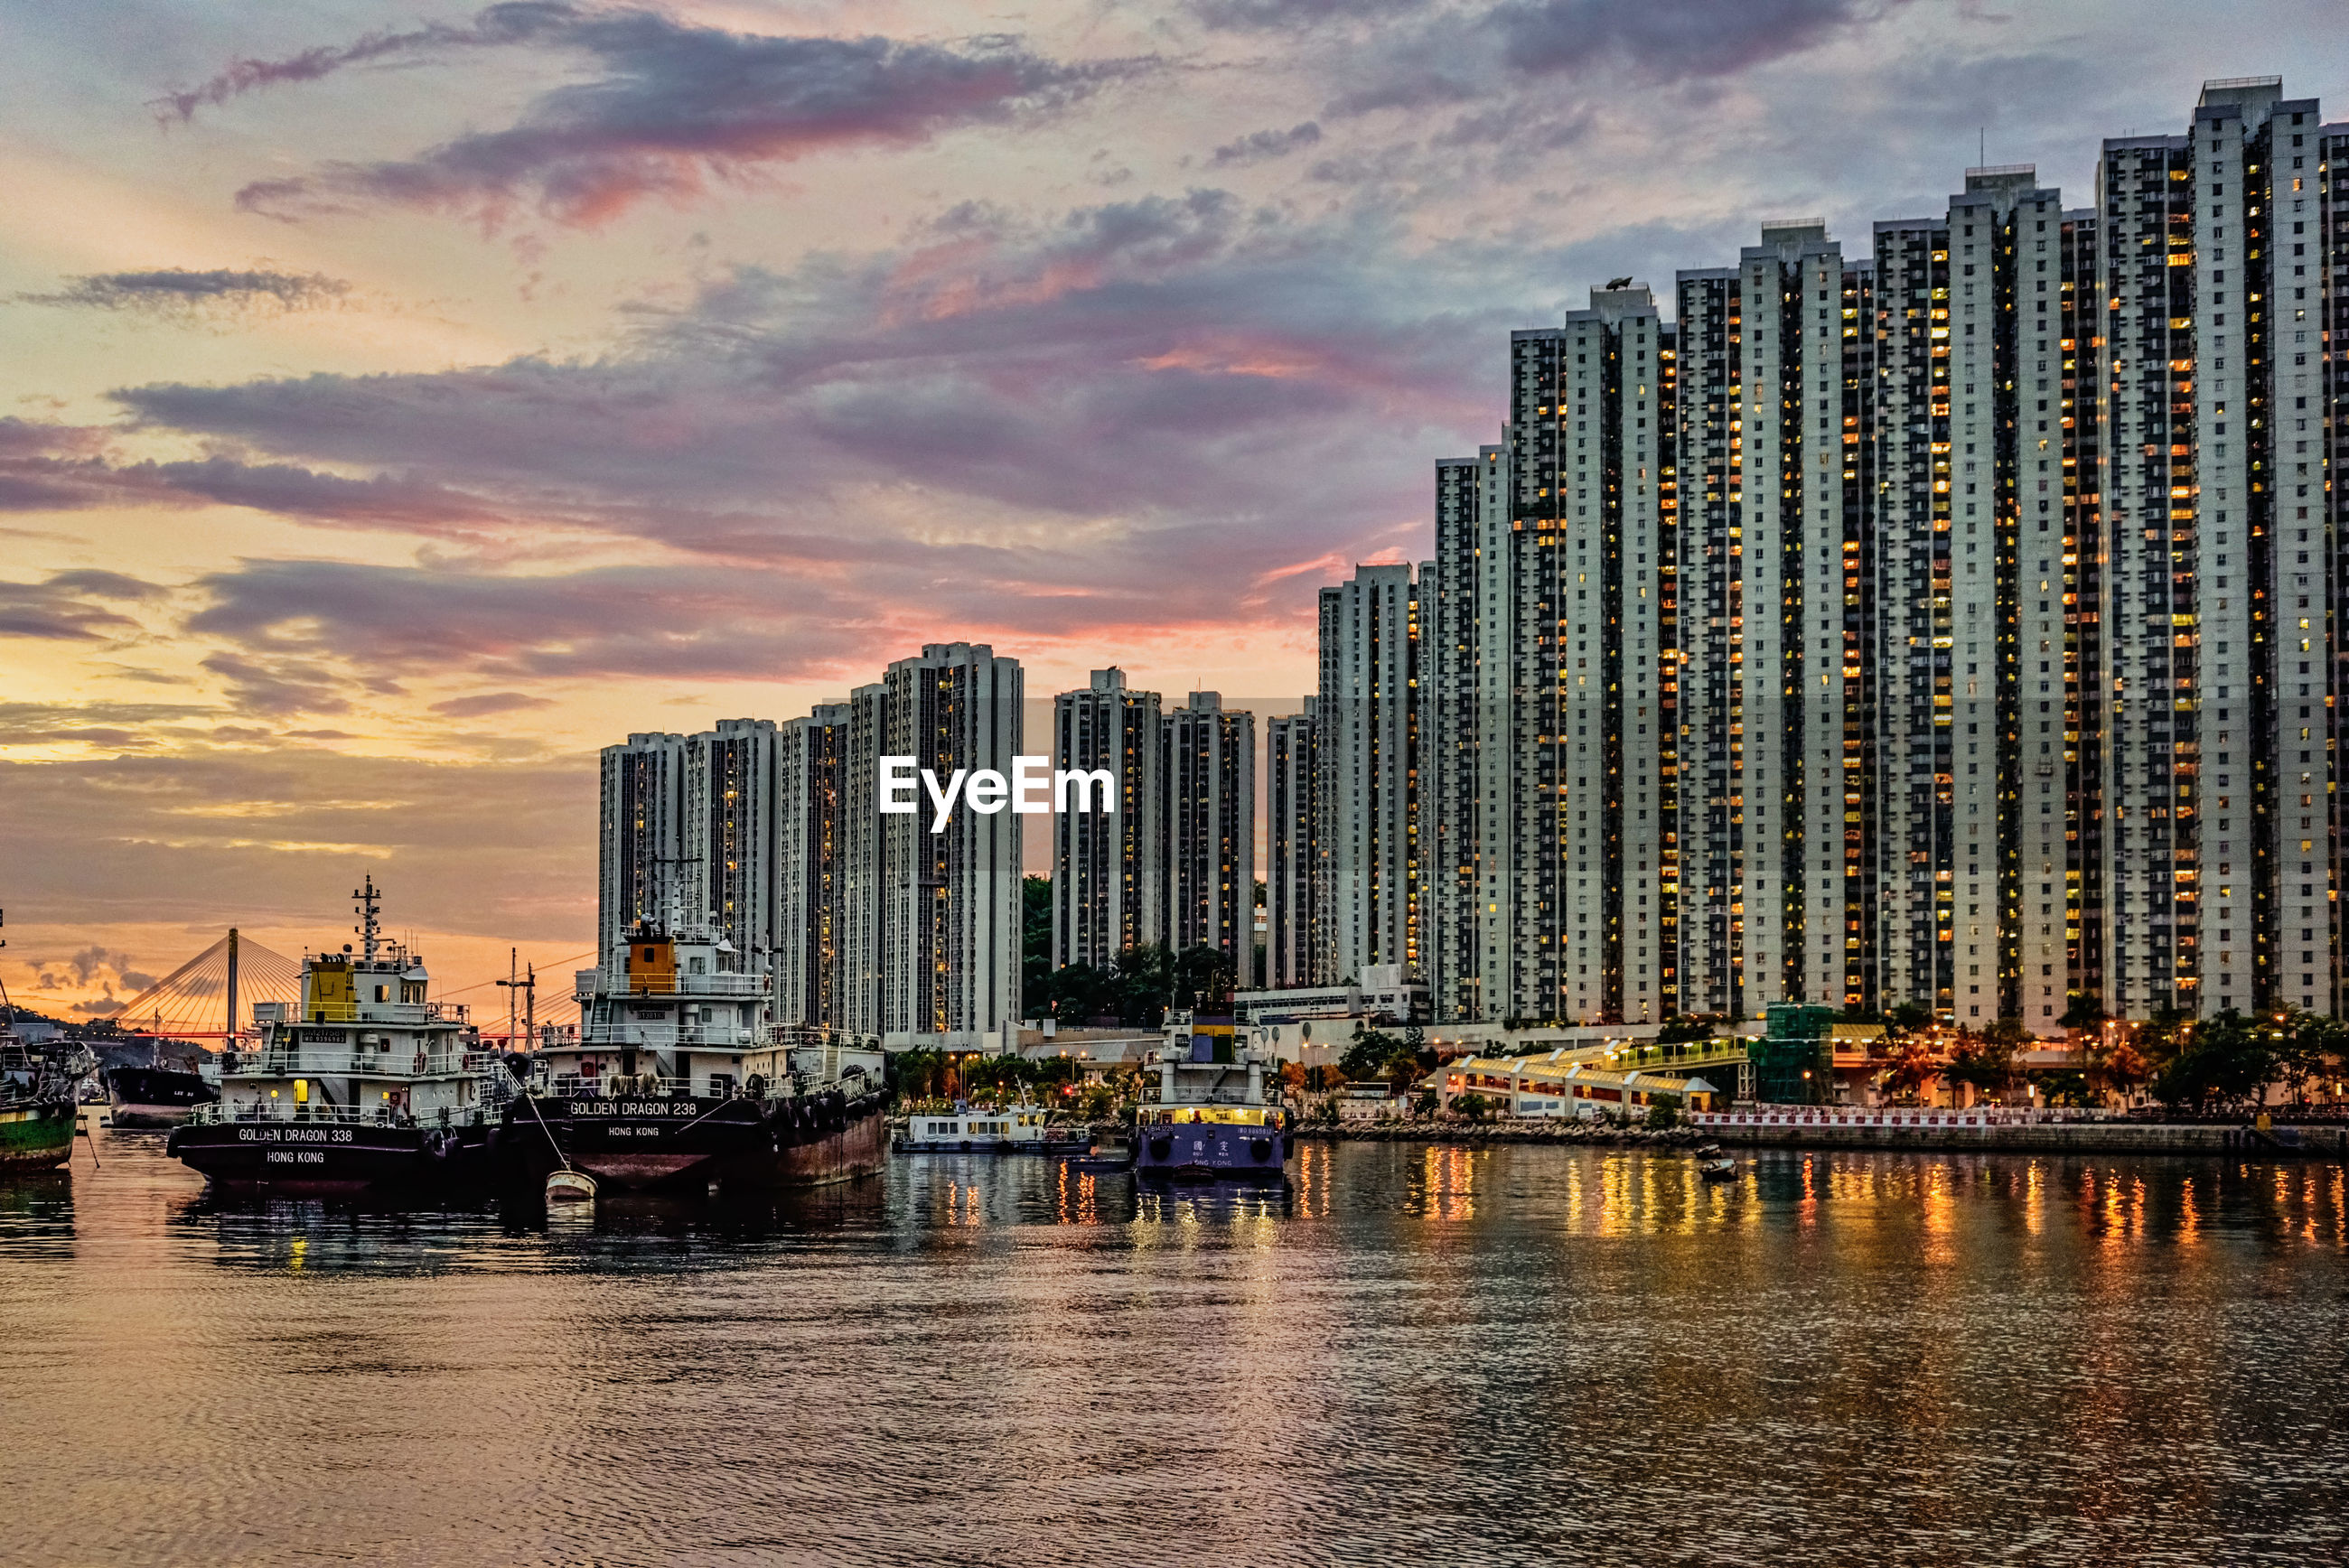 MODERN BUILDINGS BY SEA AGAINST SKY AT SUNSET